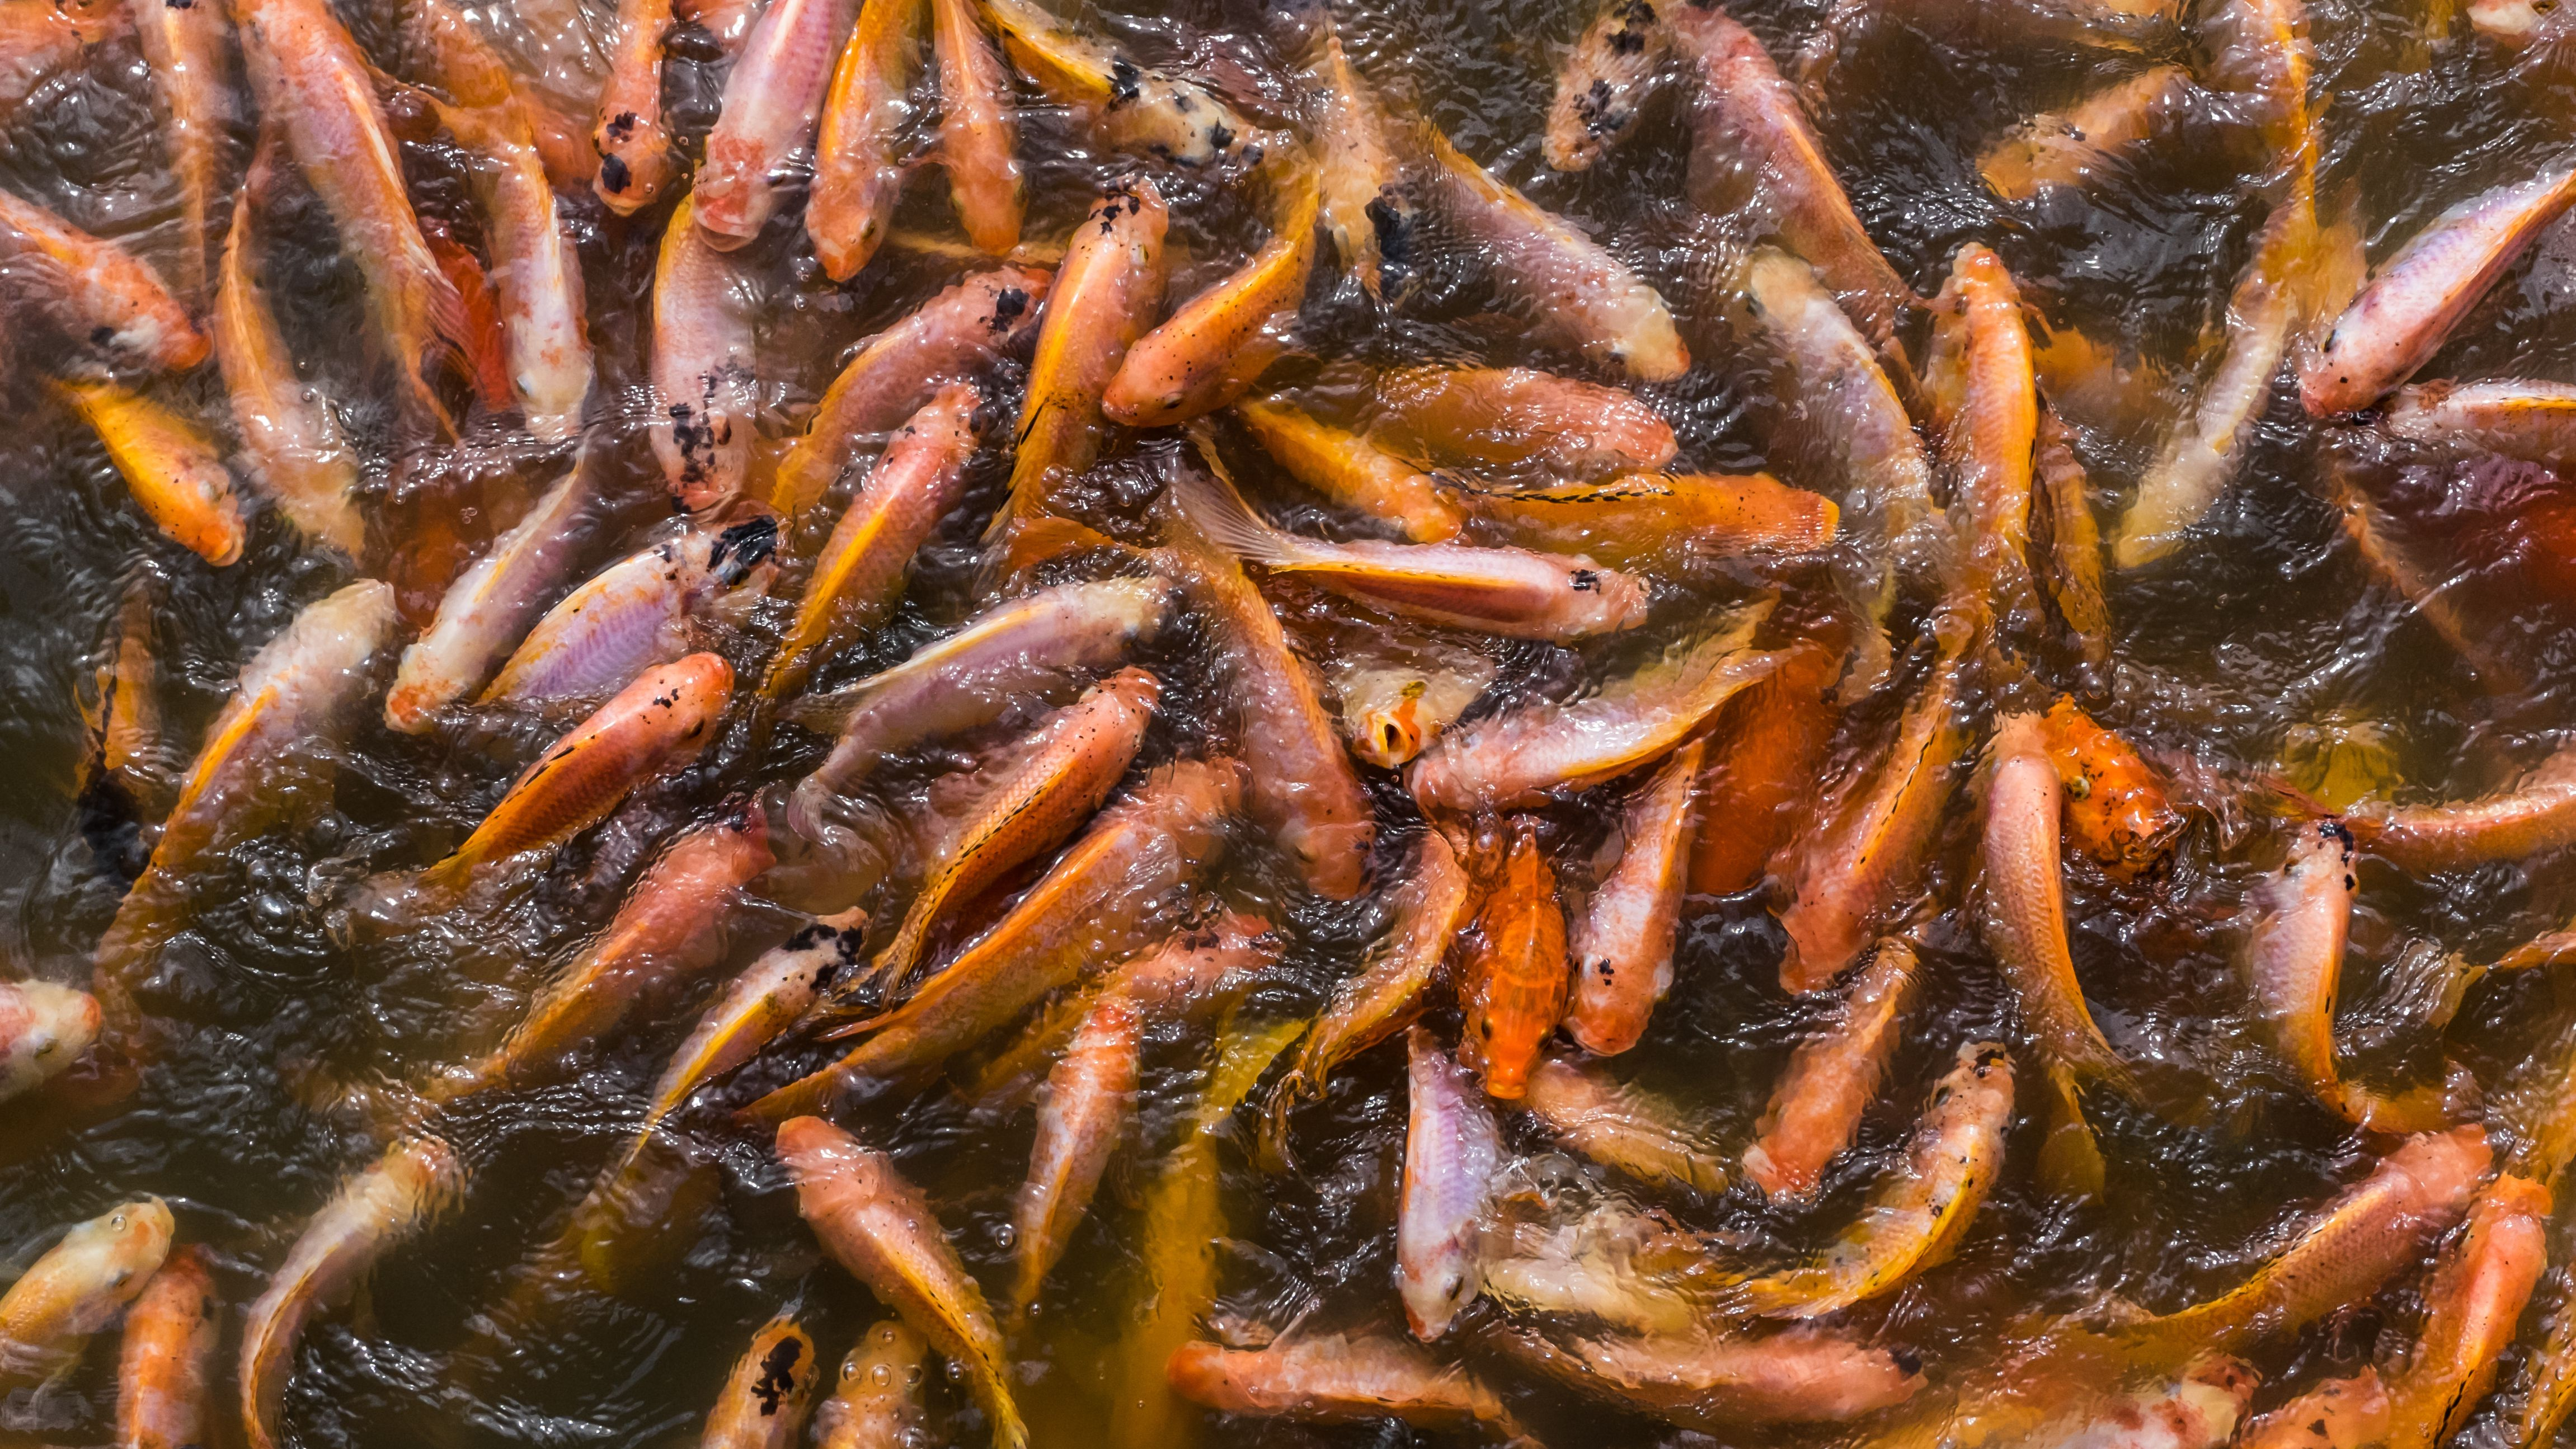 Tilapia added to the lake near Mexico City are one of the main threats to axolotl survival.